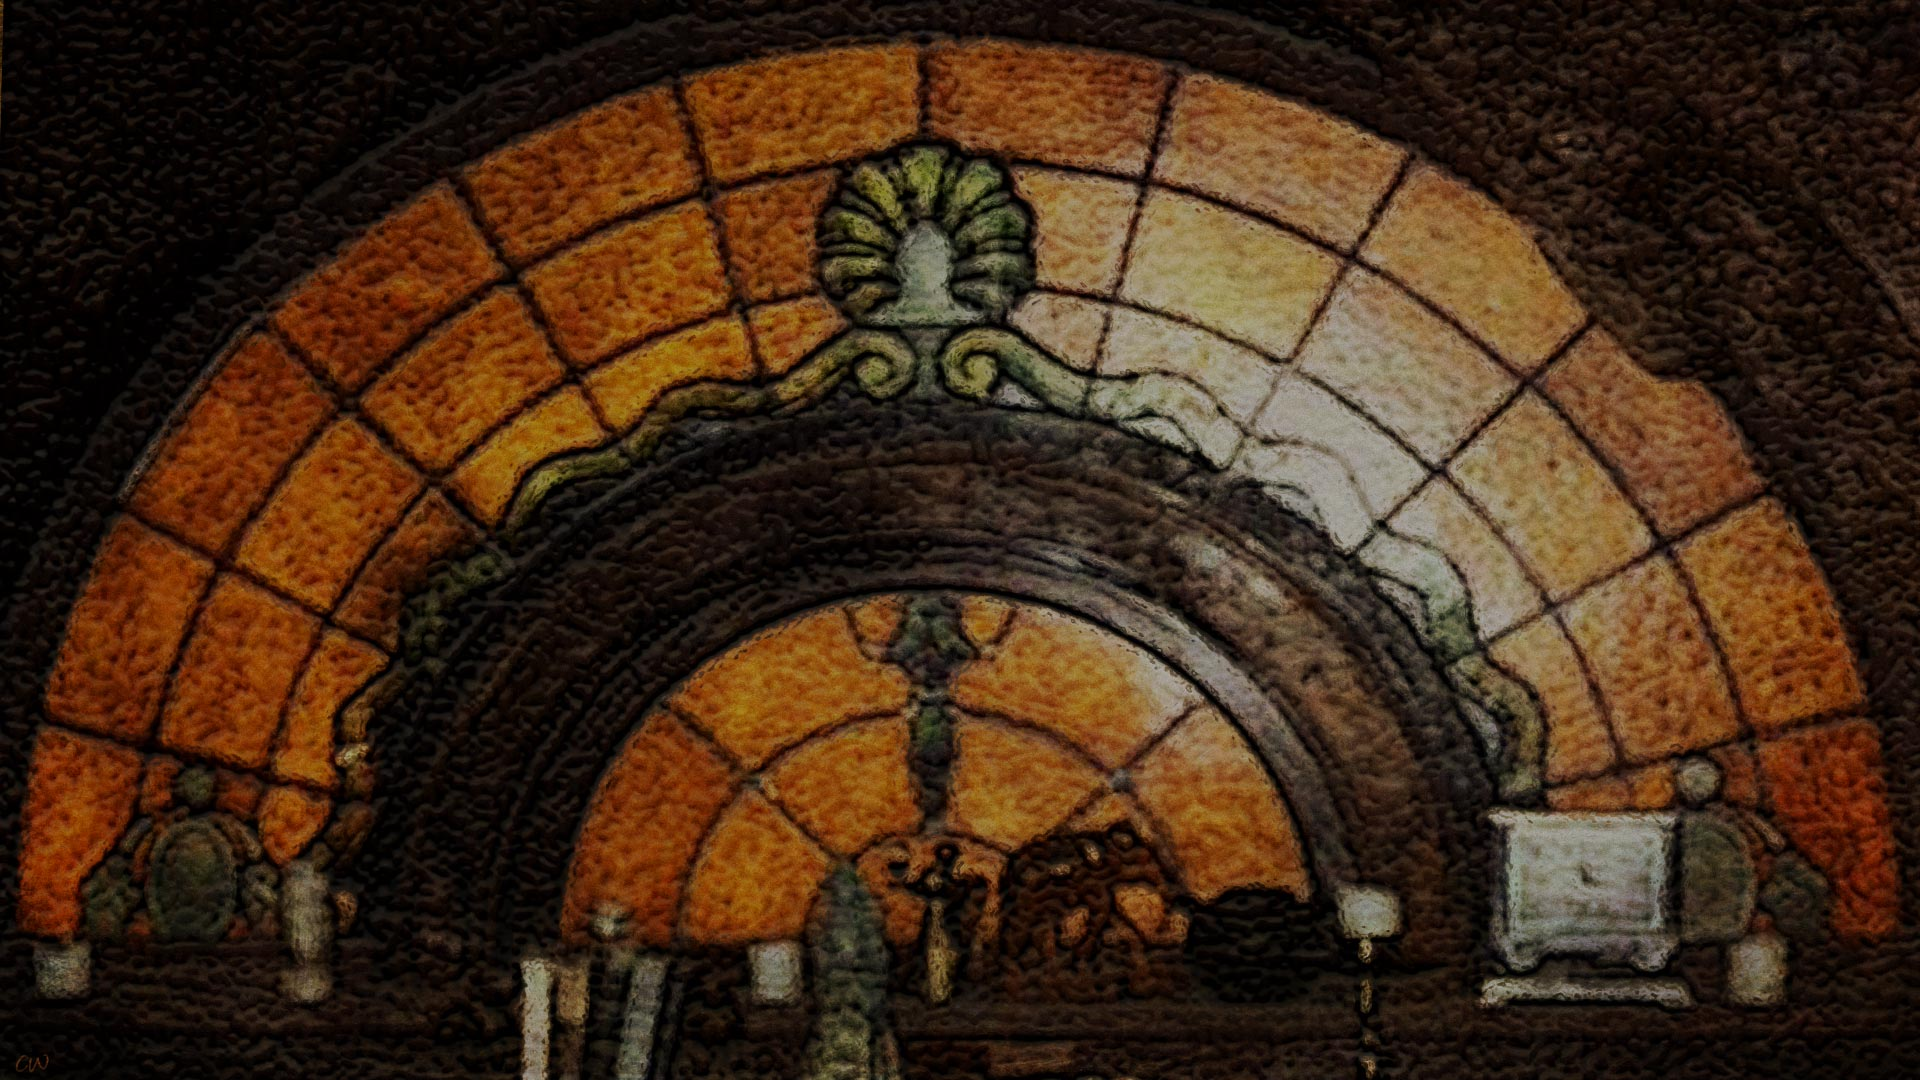 Vincent's stained glass window close-up